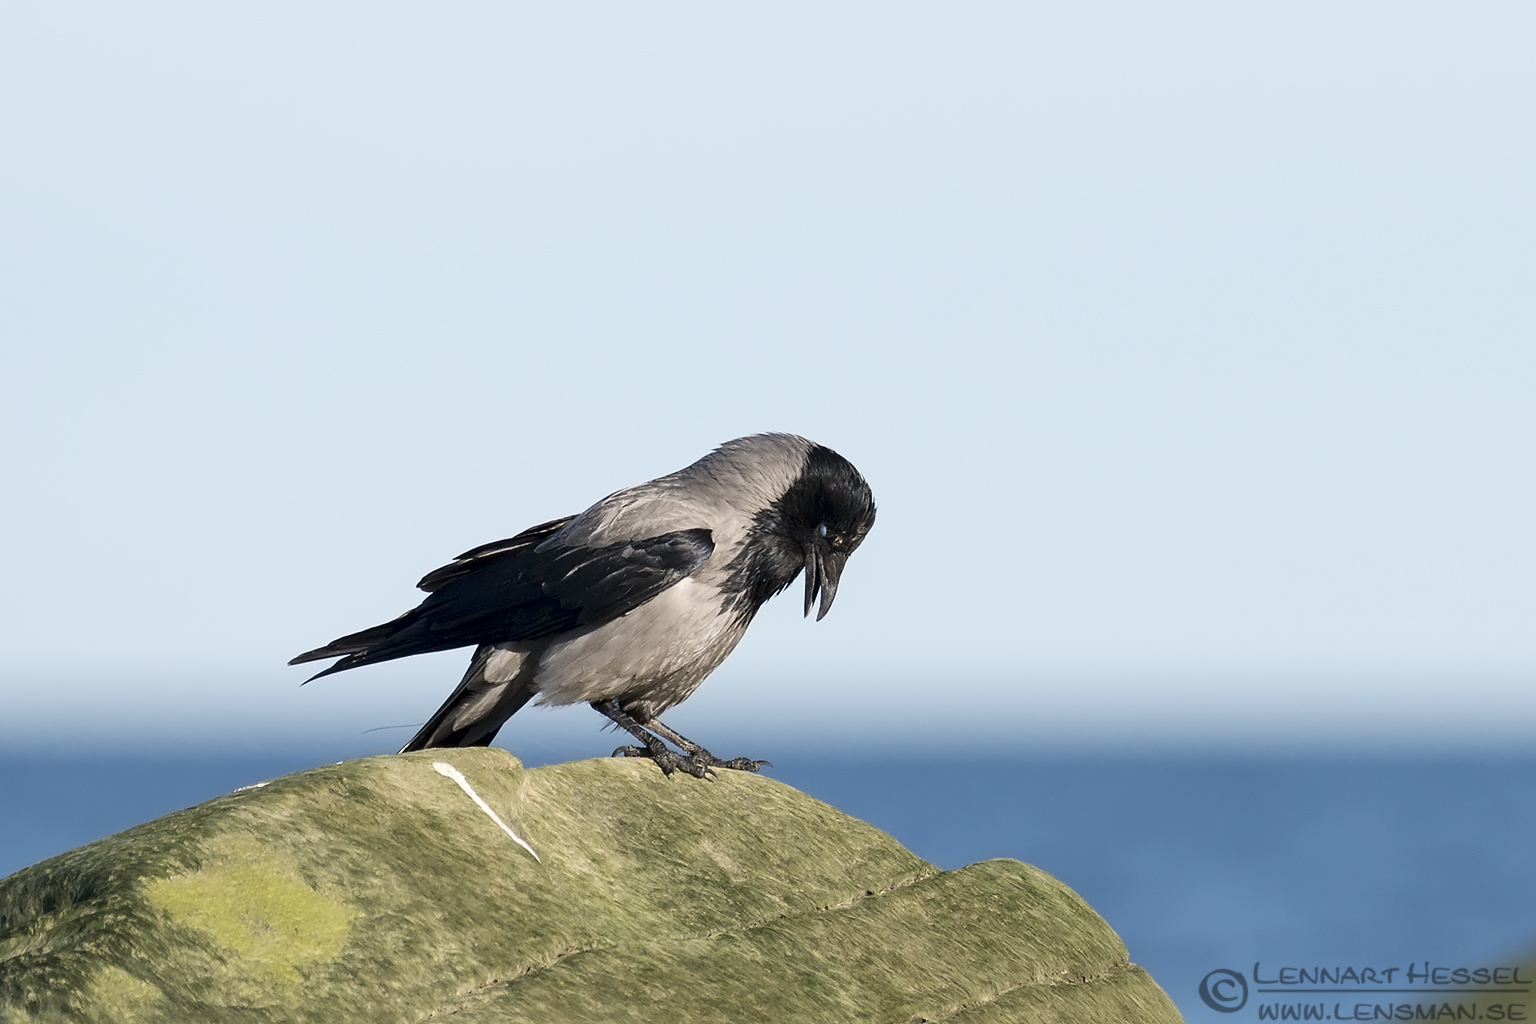 Hooded Crow at Glommen